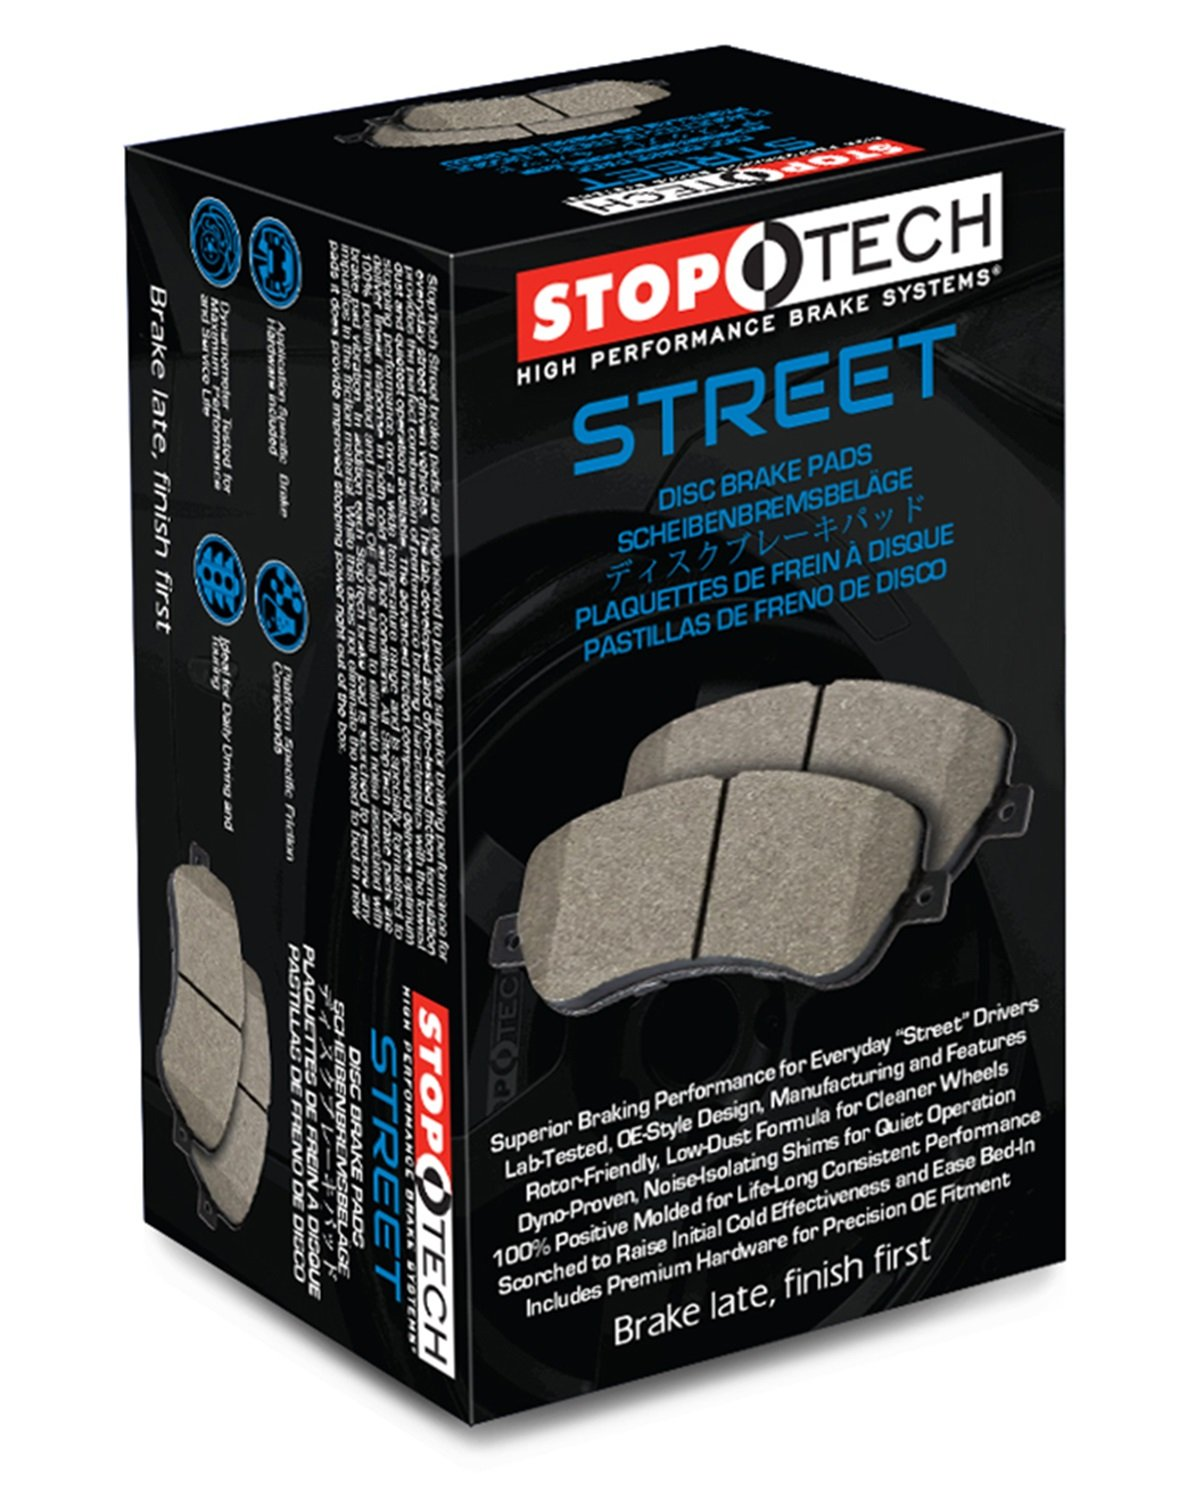 StopTech 308.05552 Street Bremsbelag, Set of 4 von StopTech